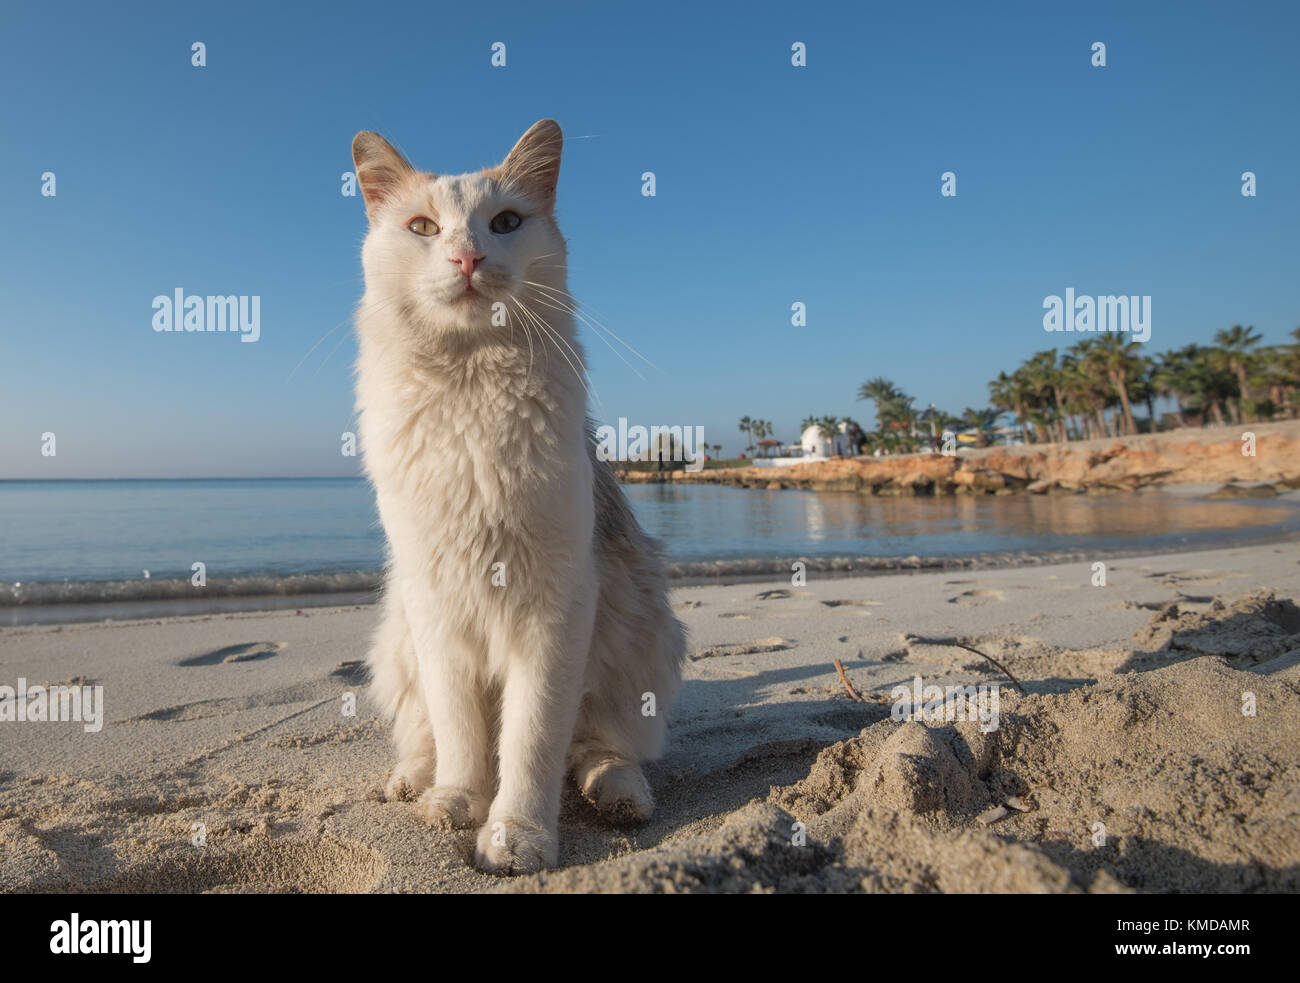 Portrait of a beautiful white domestic cat sitting proudly on the sandy beach of Nissi Beach, Ayia Napa, Cyprus - Stock Image